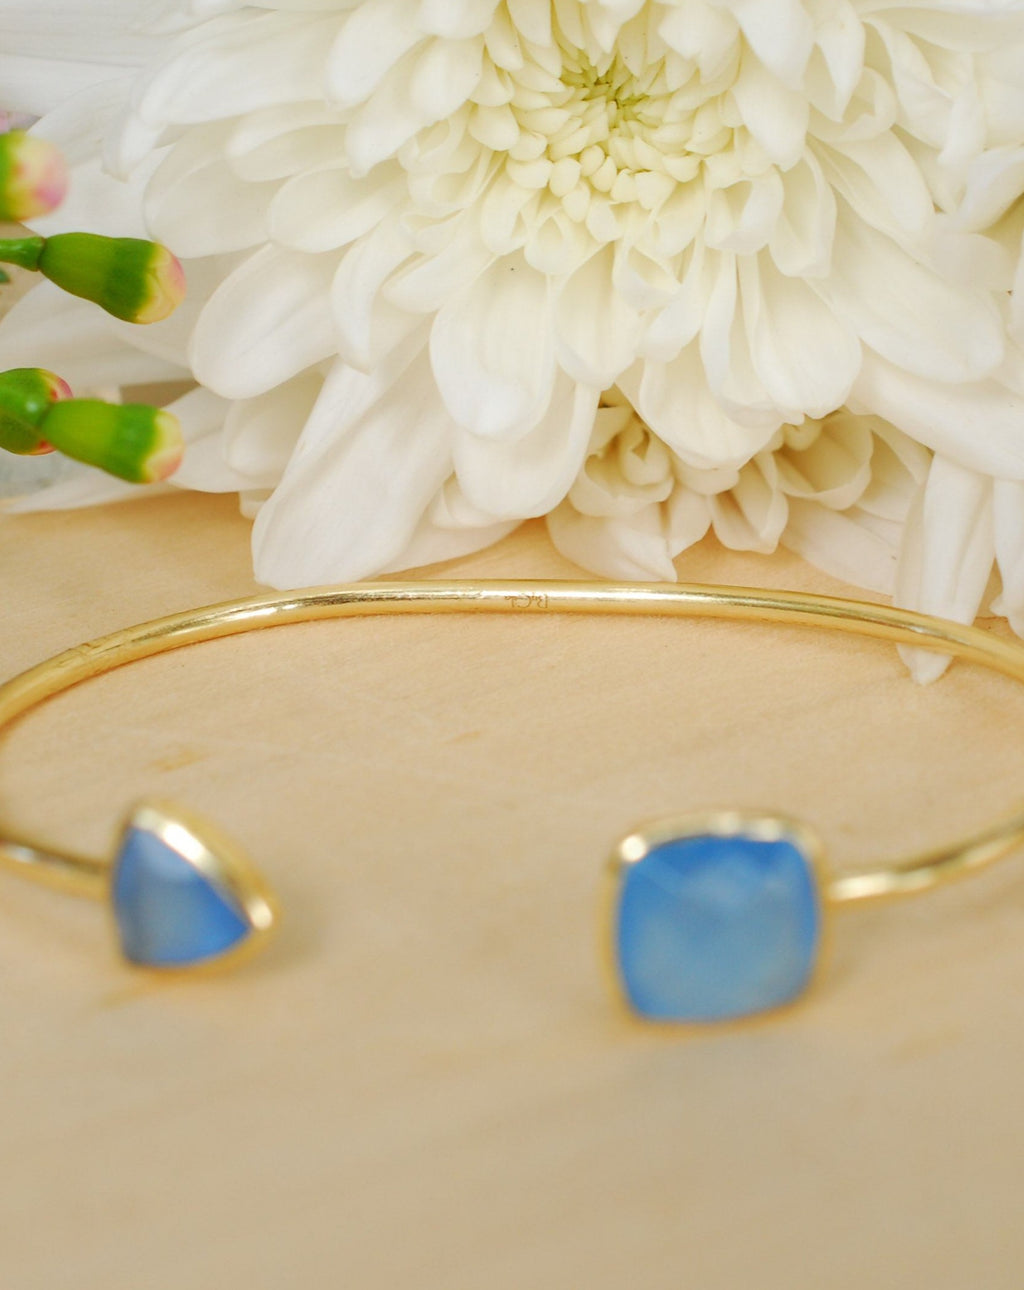 Blue Chalcedony Bangle Bracelet *Gold Plated 18k or Silver Plated* Gemstone * Gypsy * Adjustable * Statement * Stacking * Layering * BJB009A